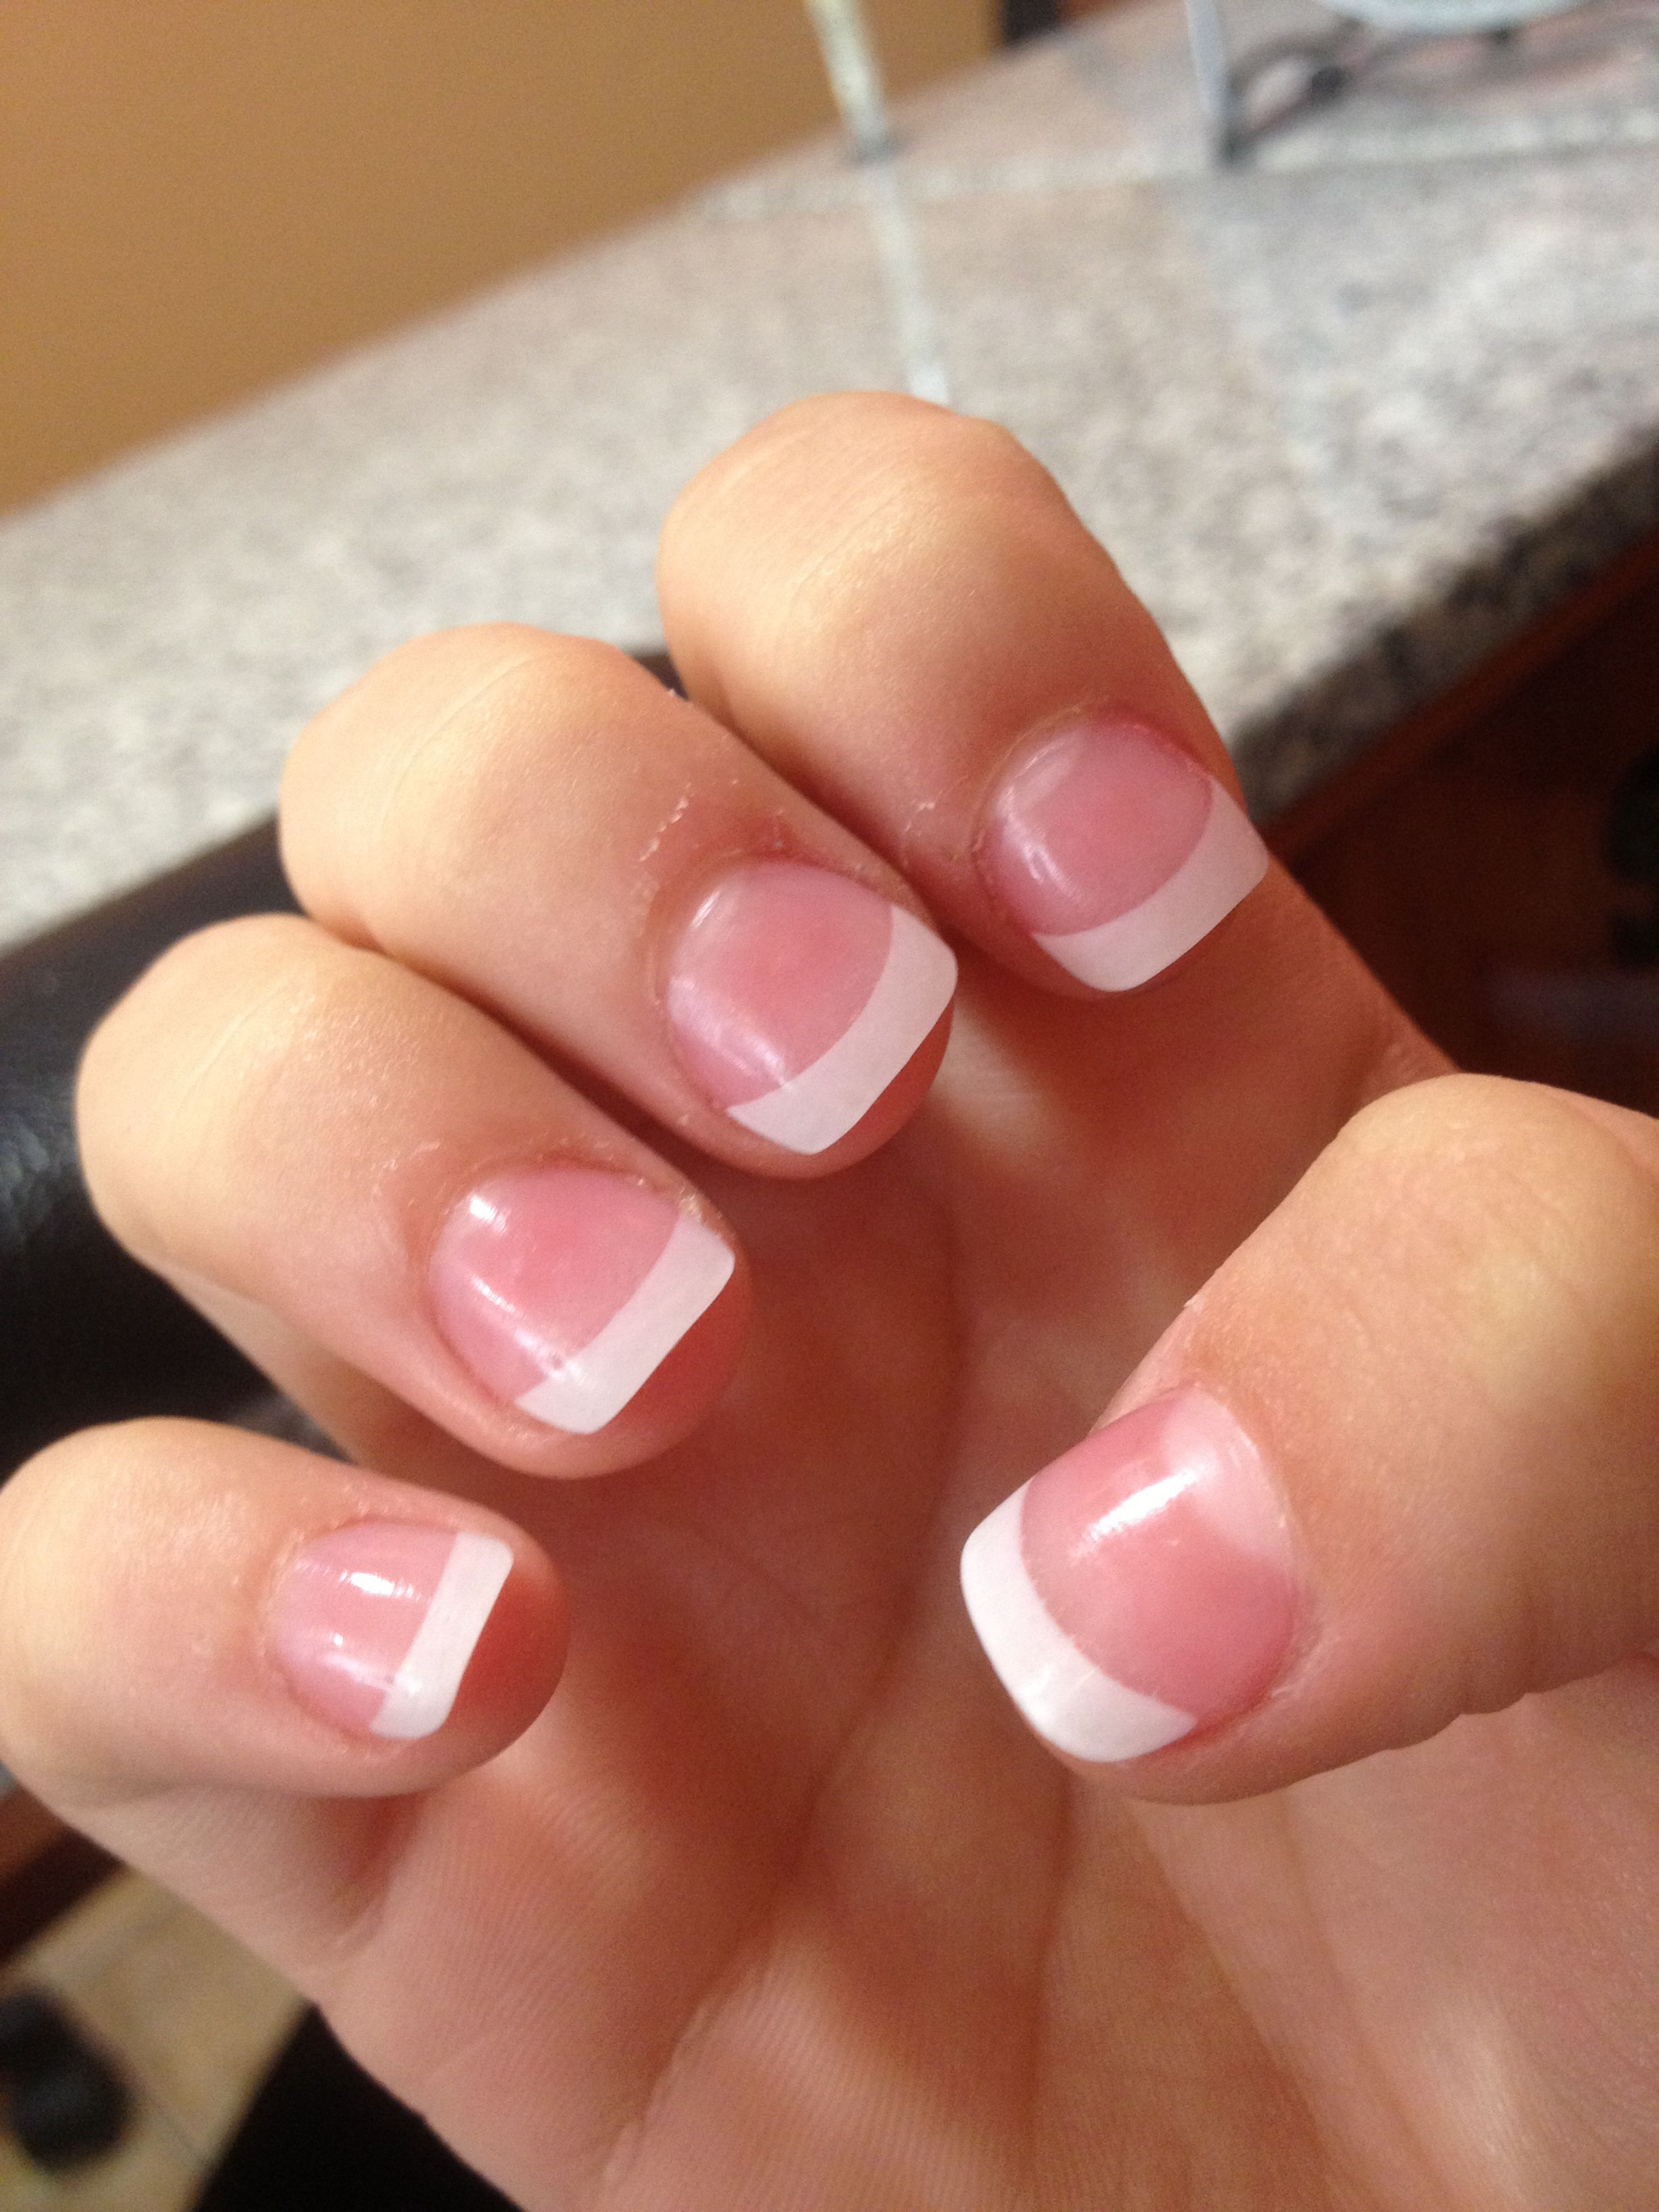 Short French Tip Acrylic Nails French Tip Acrylic Nails French Tip Nails Simple Nails